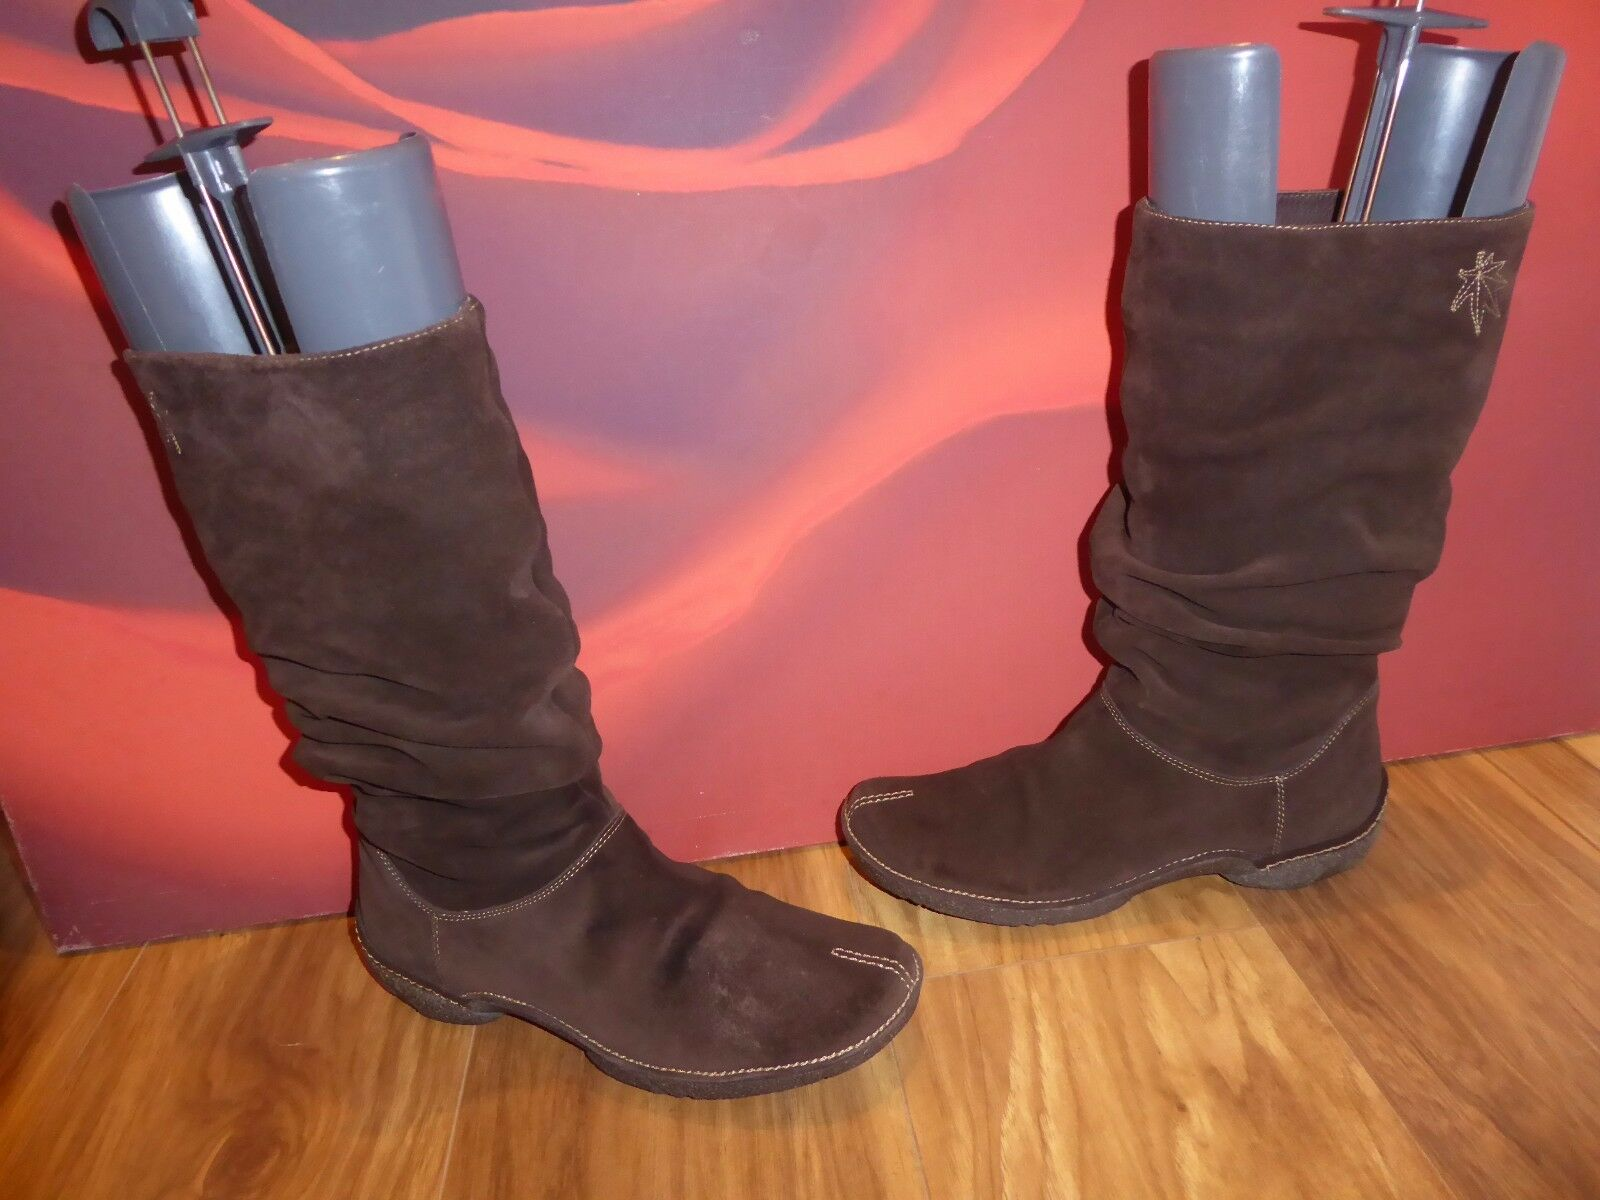 4 SUPERB  CLARKS BROWN LEATHER SUEDE  WEDGE SLOUCH  BOOTS UK 7 D   8 EU 41